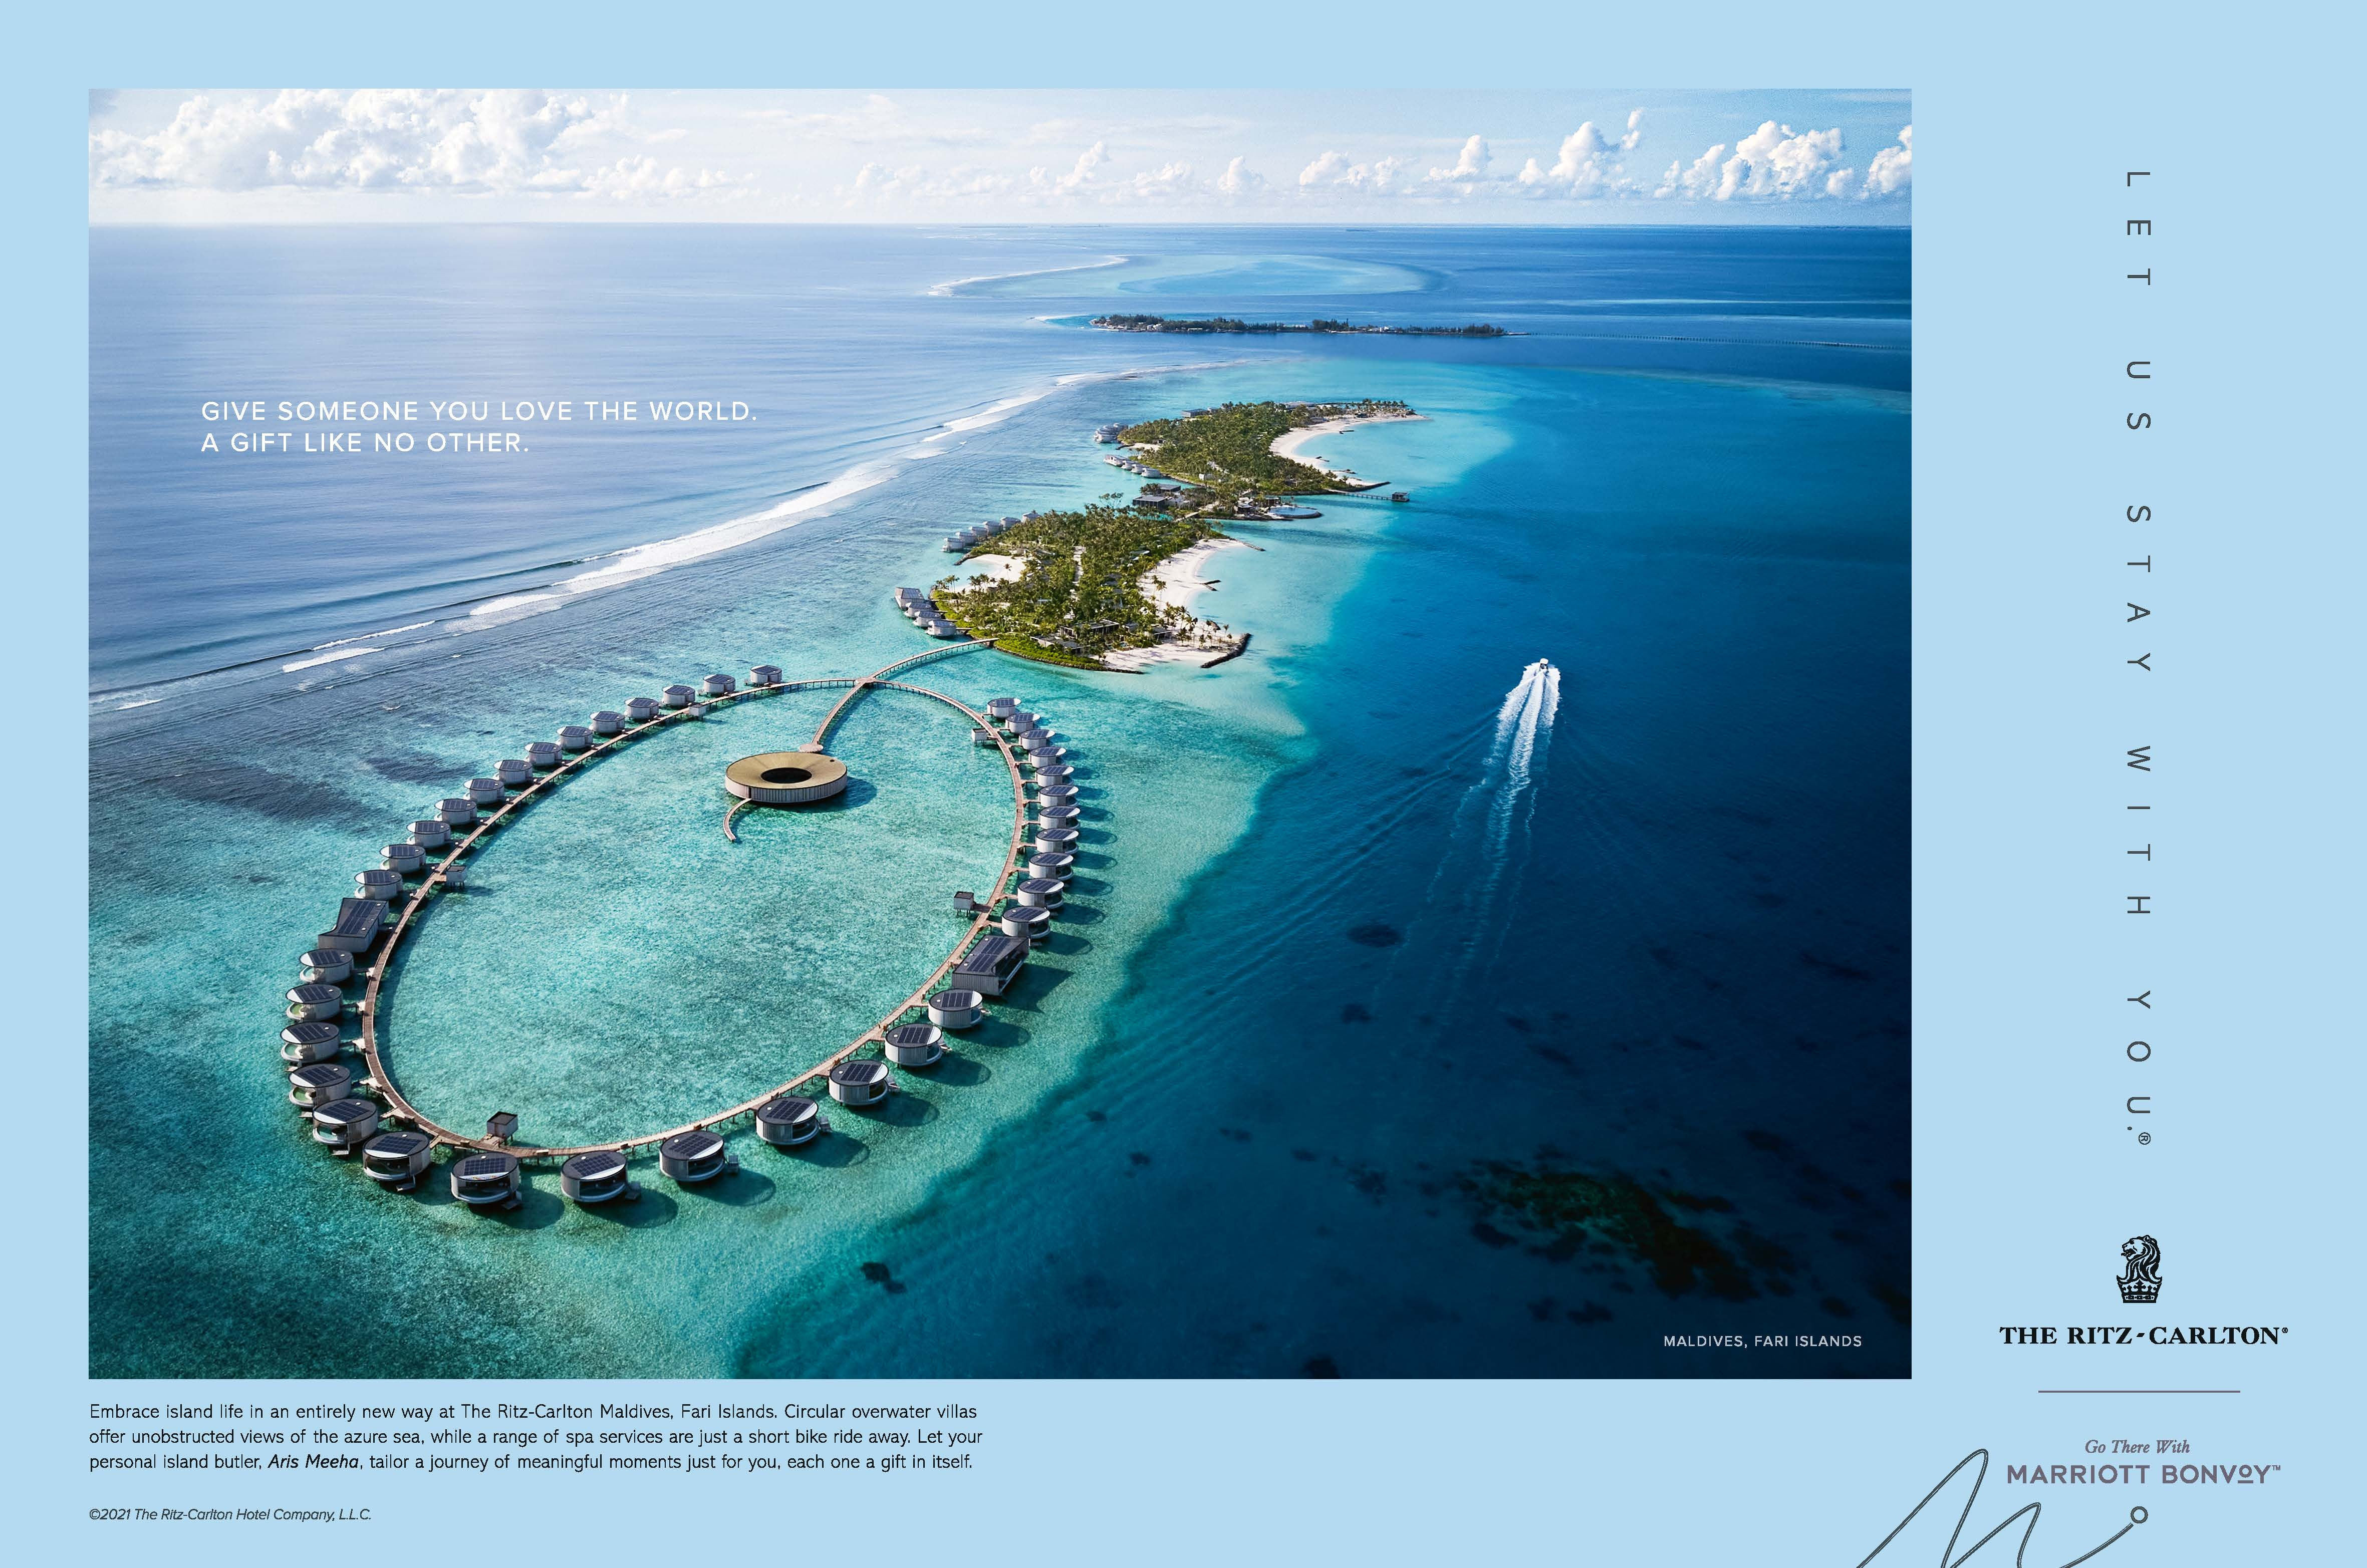 Give Someone You Love The World - Embrace island life in an entirely new way at The Ritz-Carlton Maldives Fari Islands._A Gift Like No Other.jpg